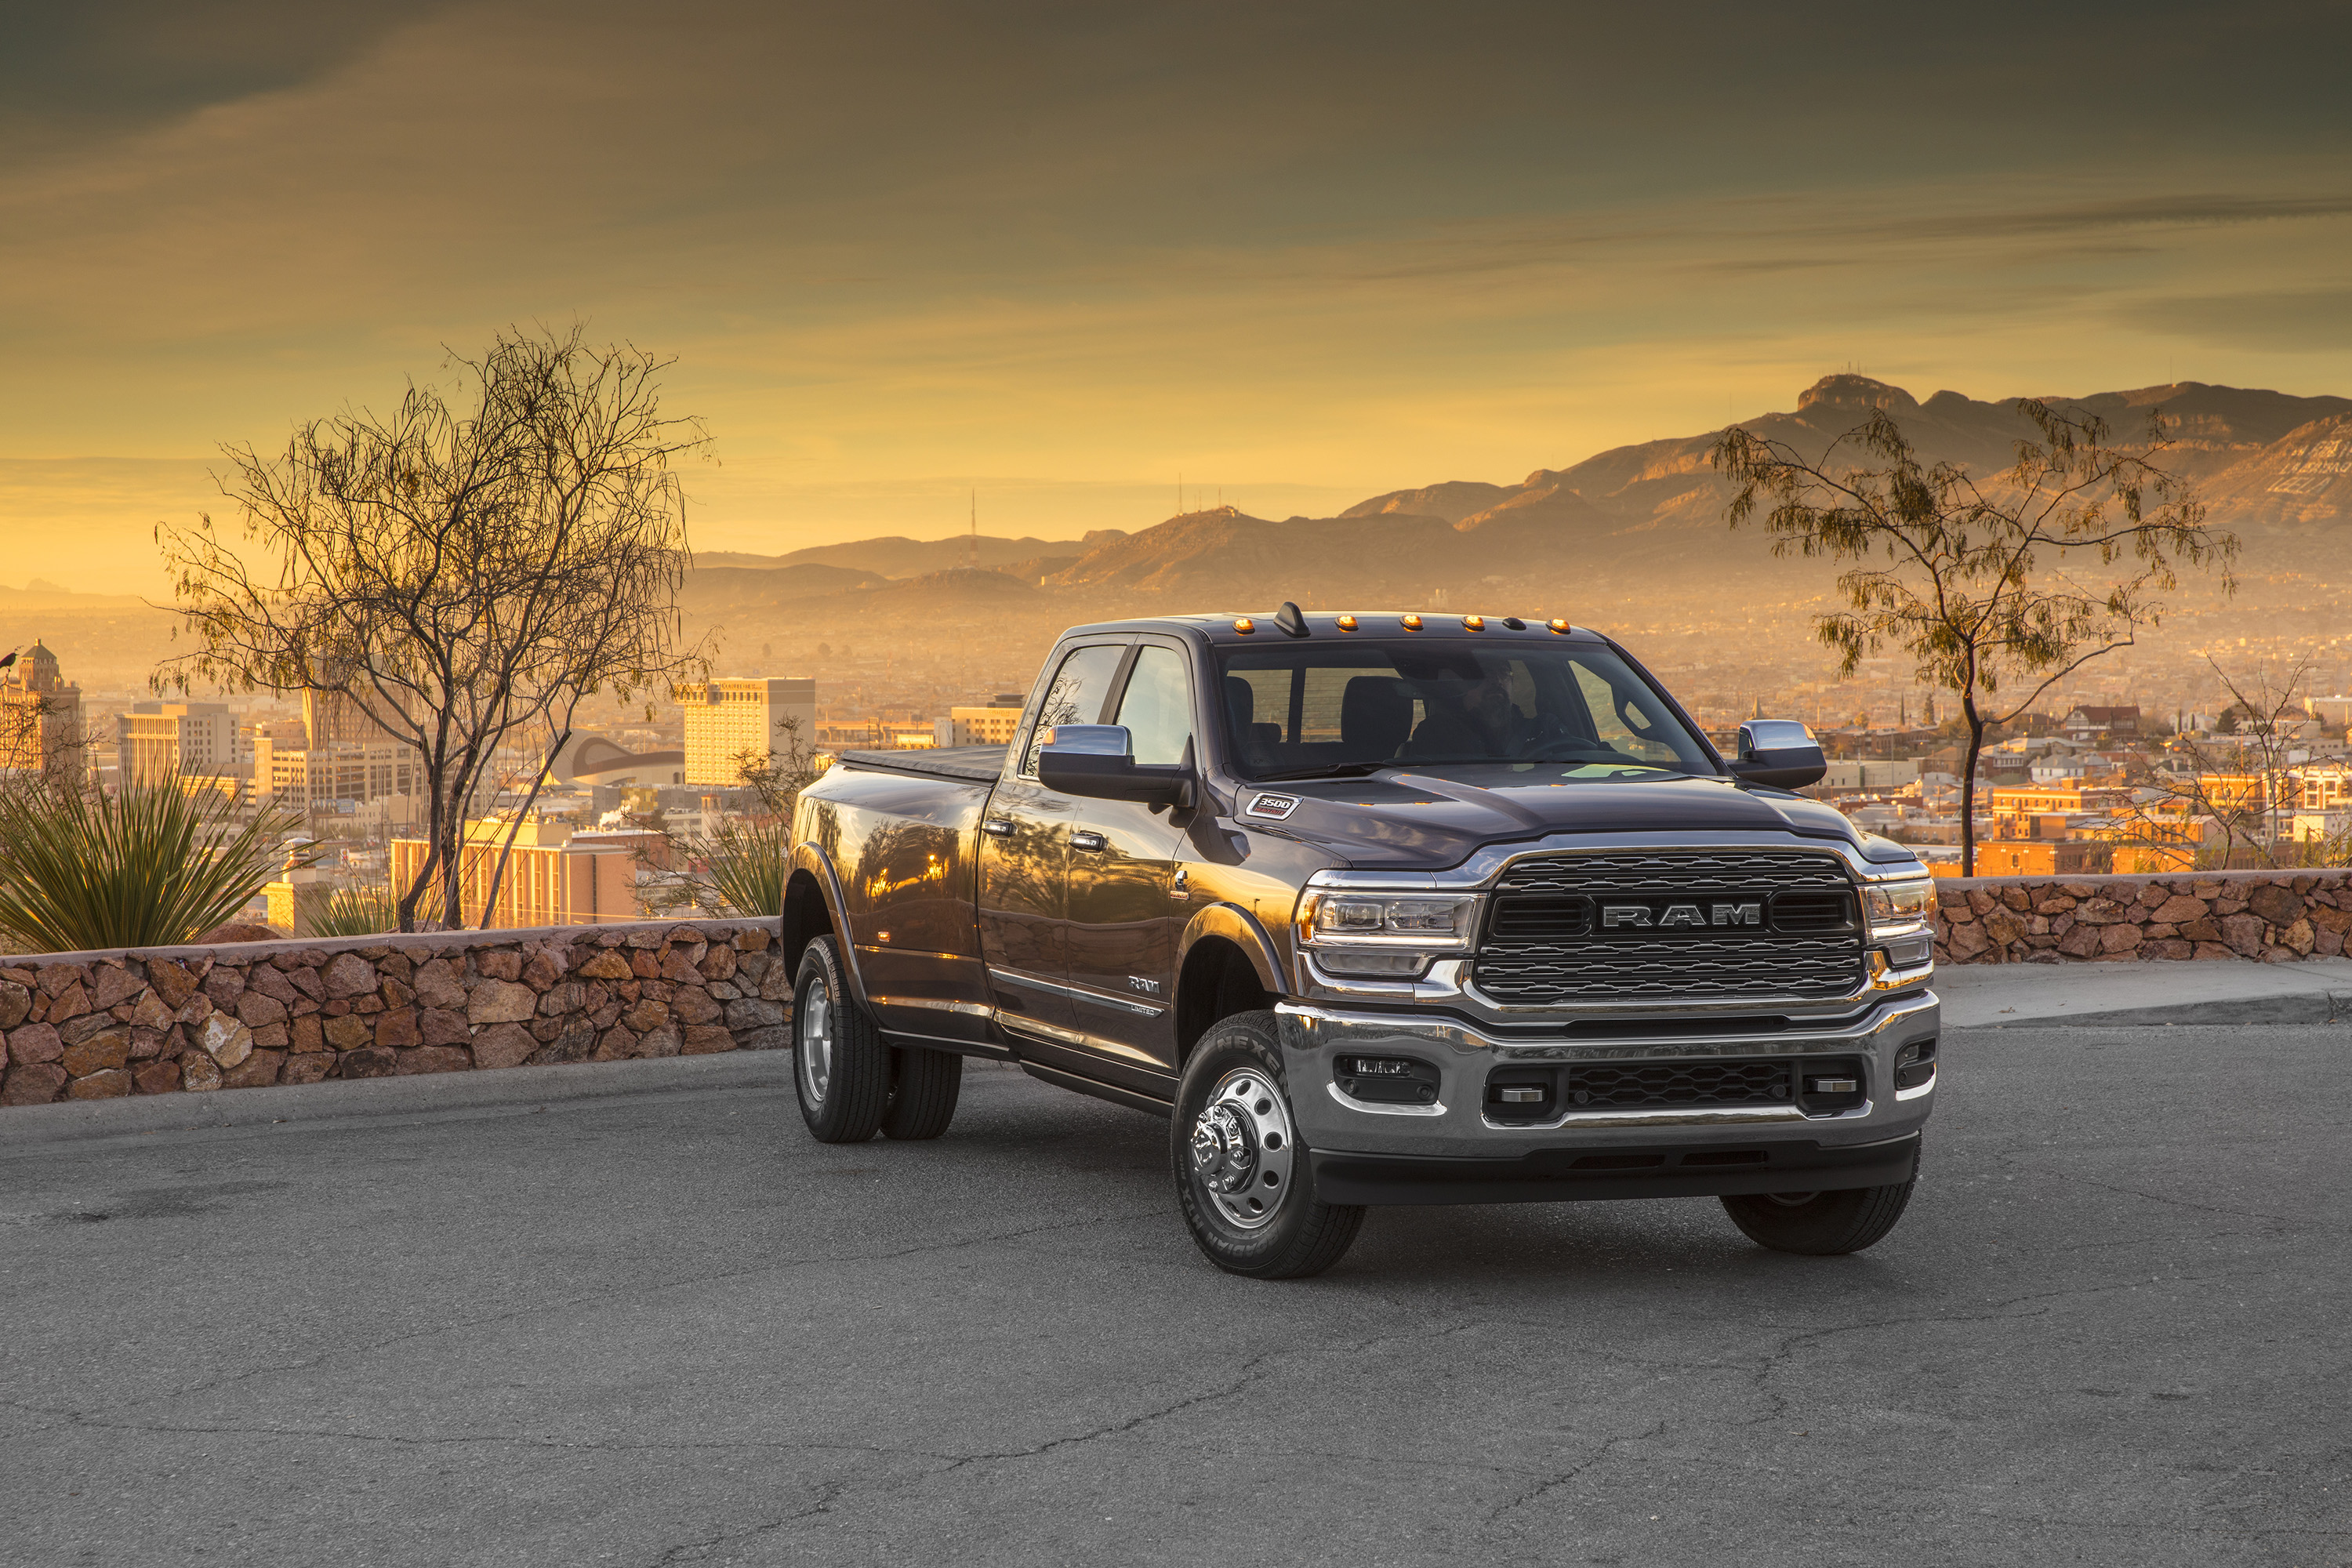 2019 Ram 3500 Heavy Duty Limited Crew Cab Dually Front Three-Quarter Wallpapers (7)